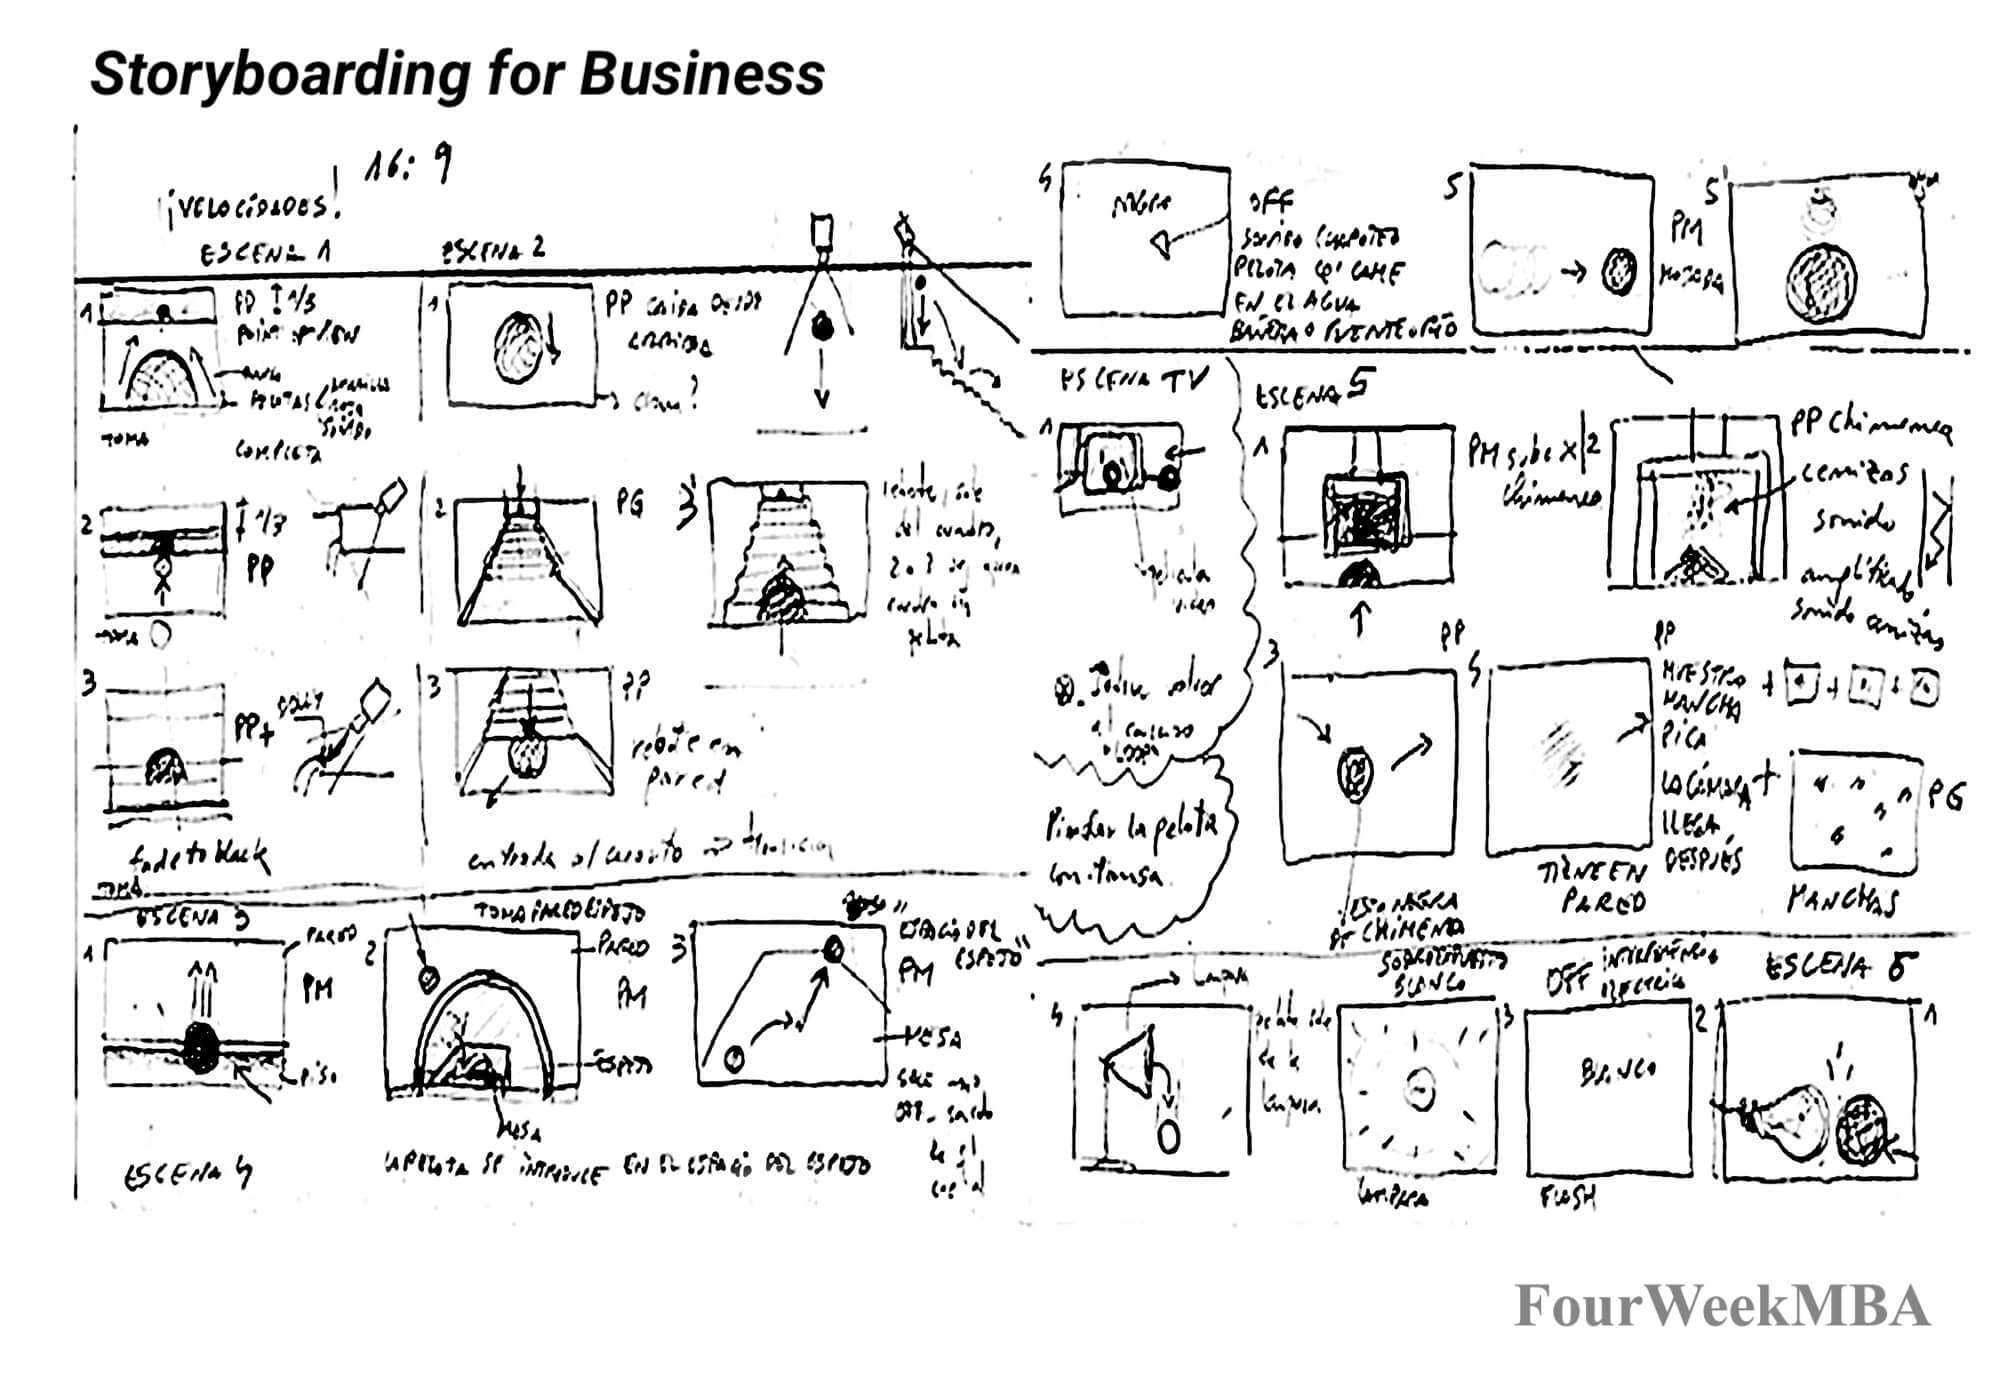 storyboarding-business